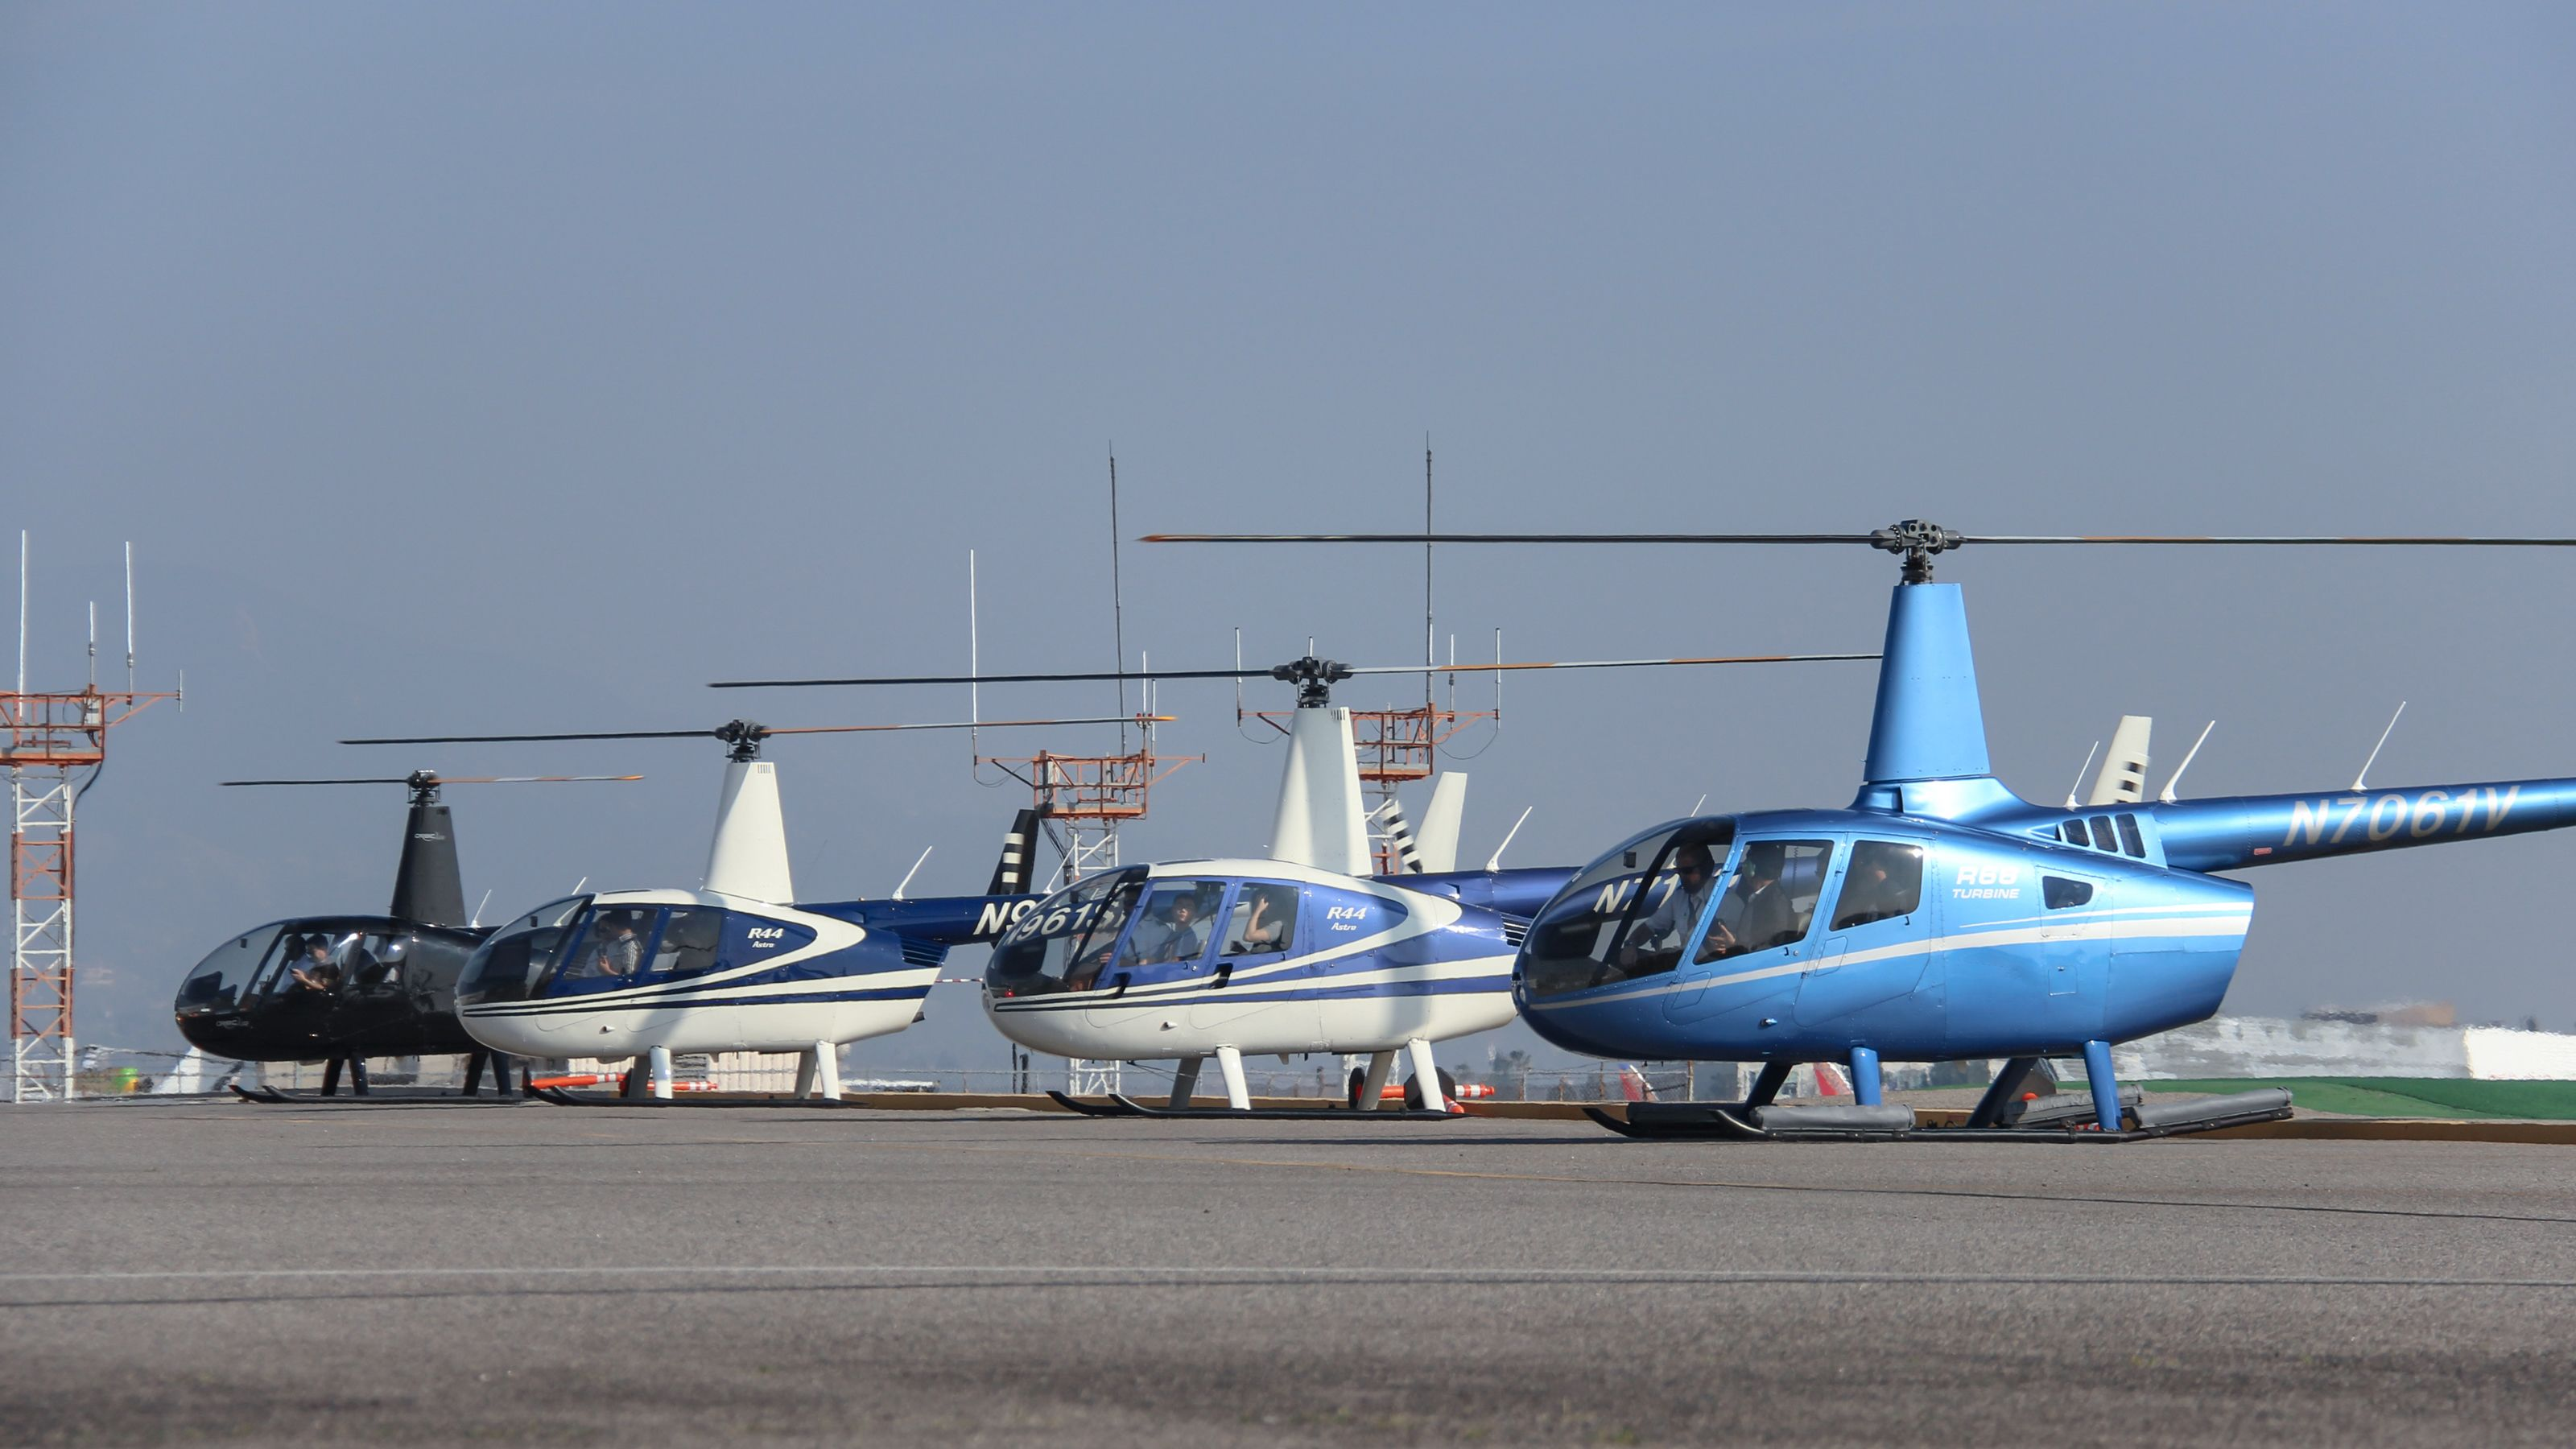 Helicopters at airport in Los Angeles